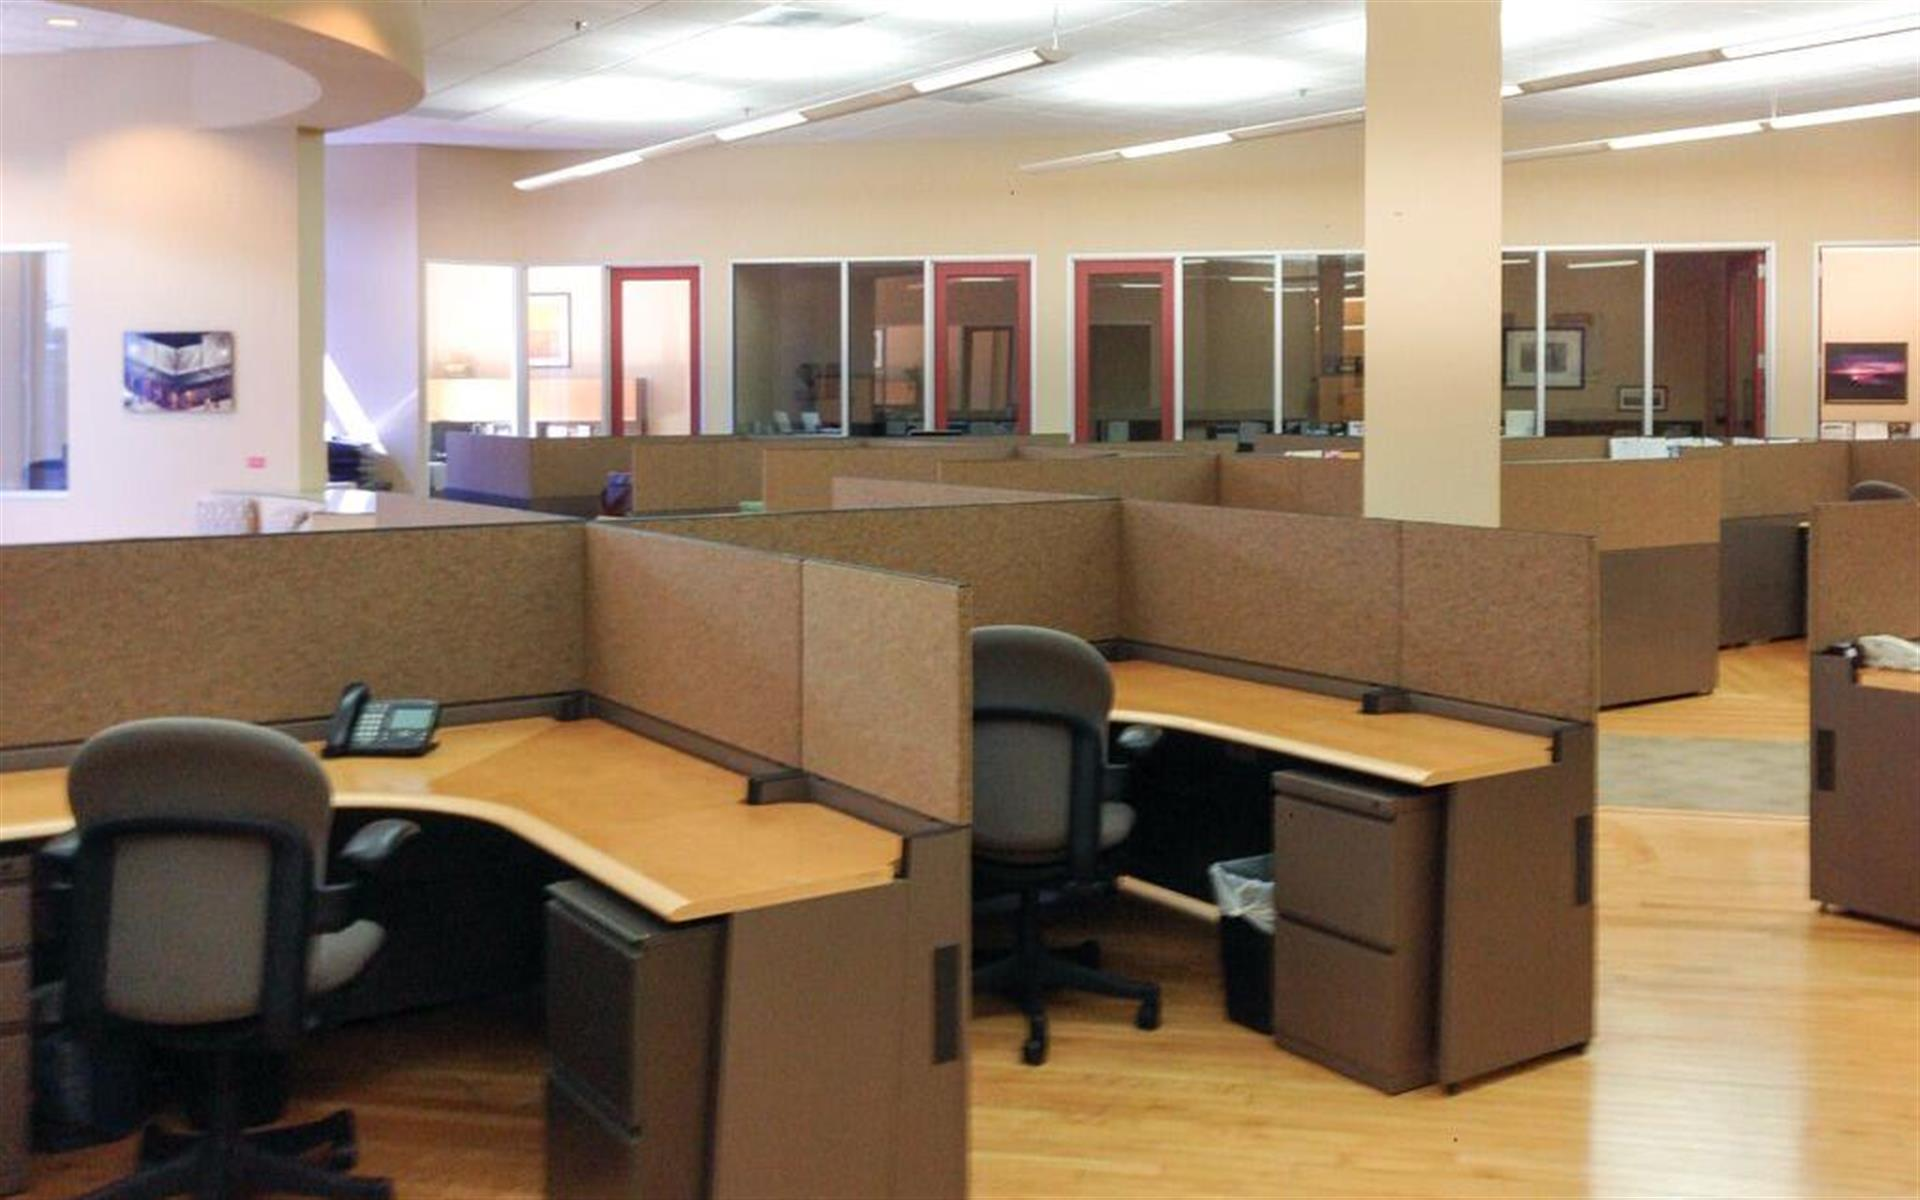 Sebastiani Theatre Building Workspace - Work Stations